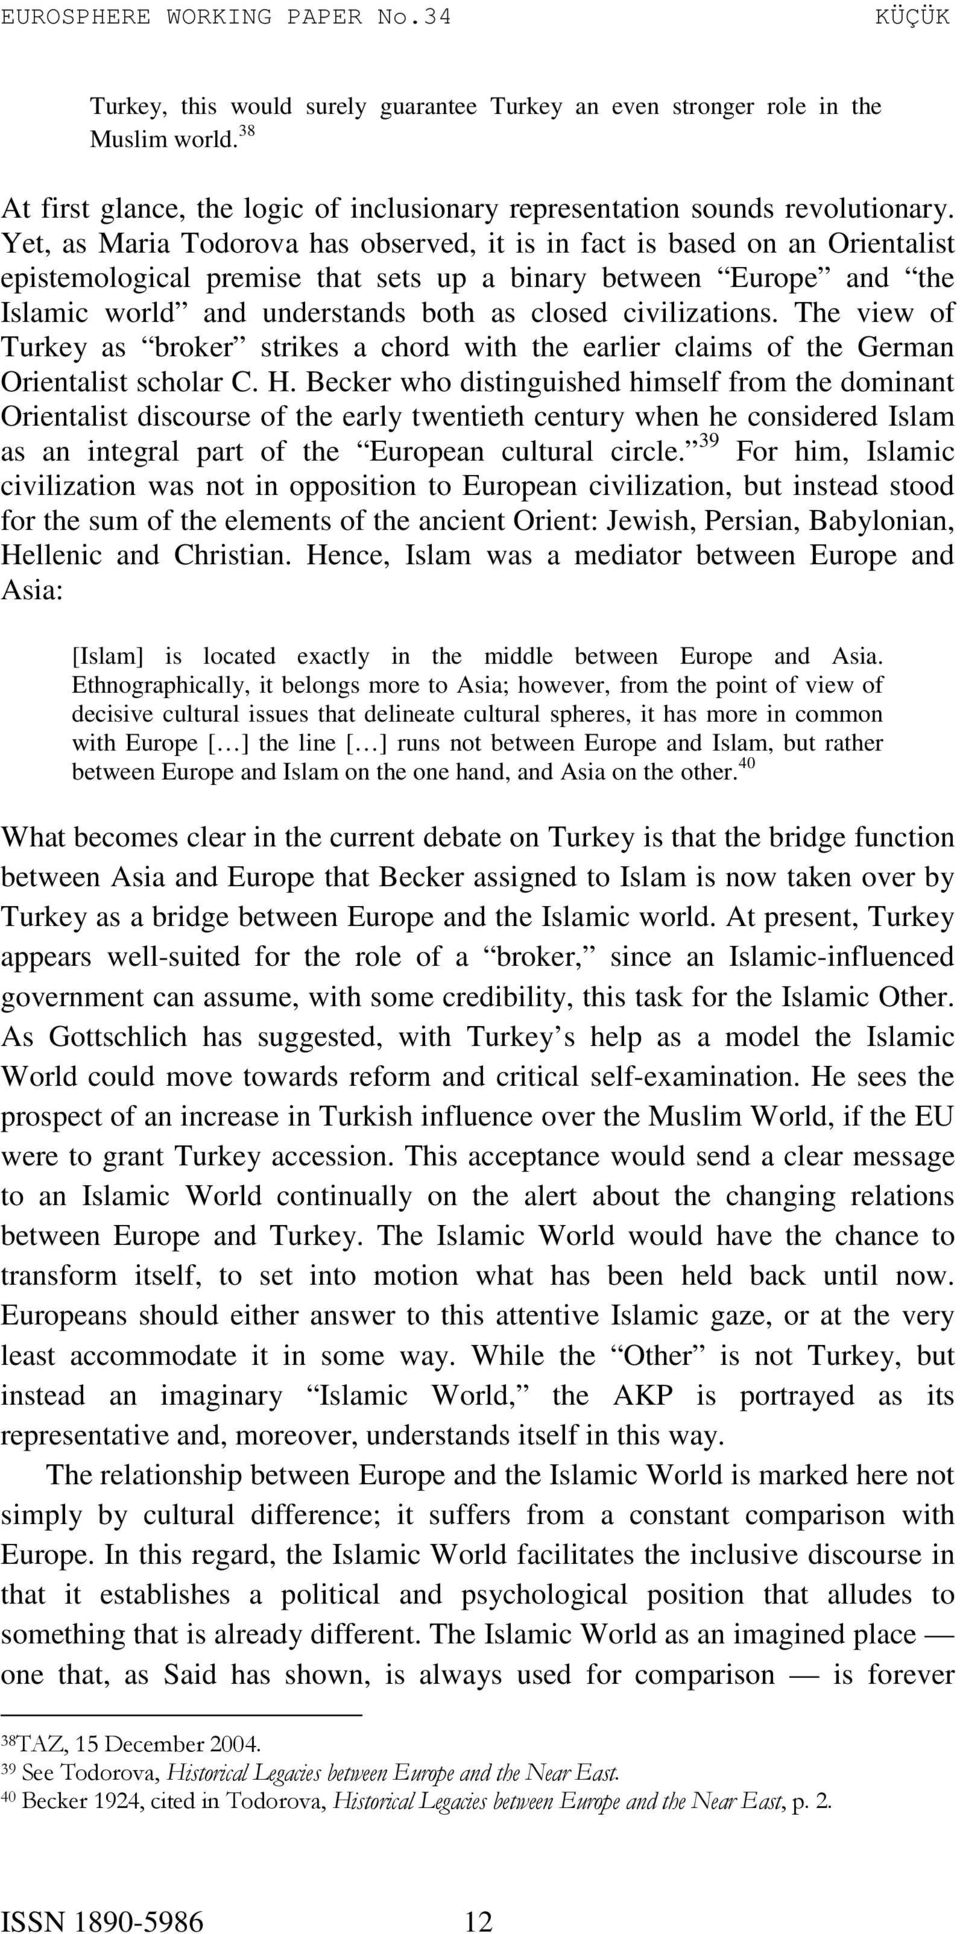 civilizations. The view of Turkey as broker strikes a chord with the earlier claims of the German Orientalist scholar C. H.